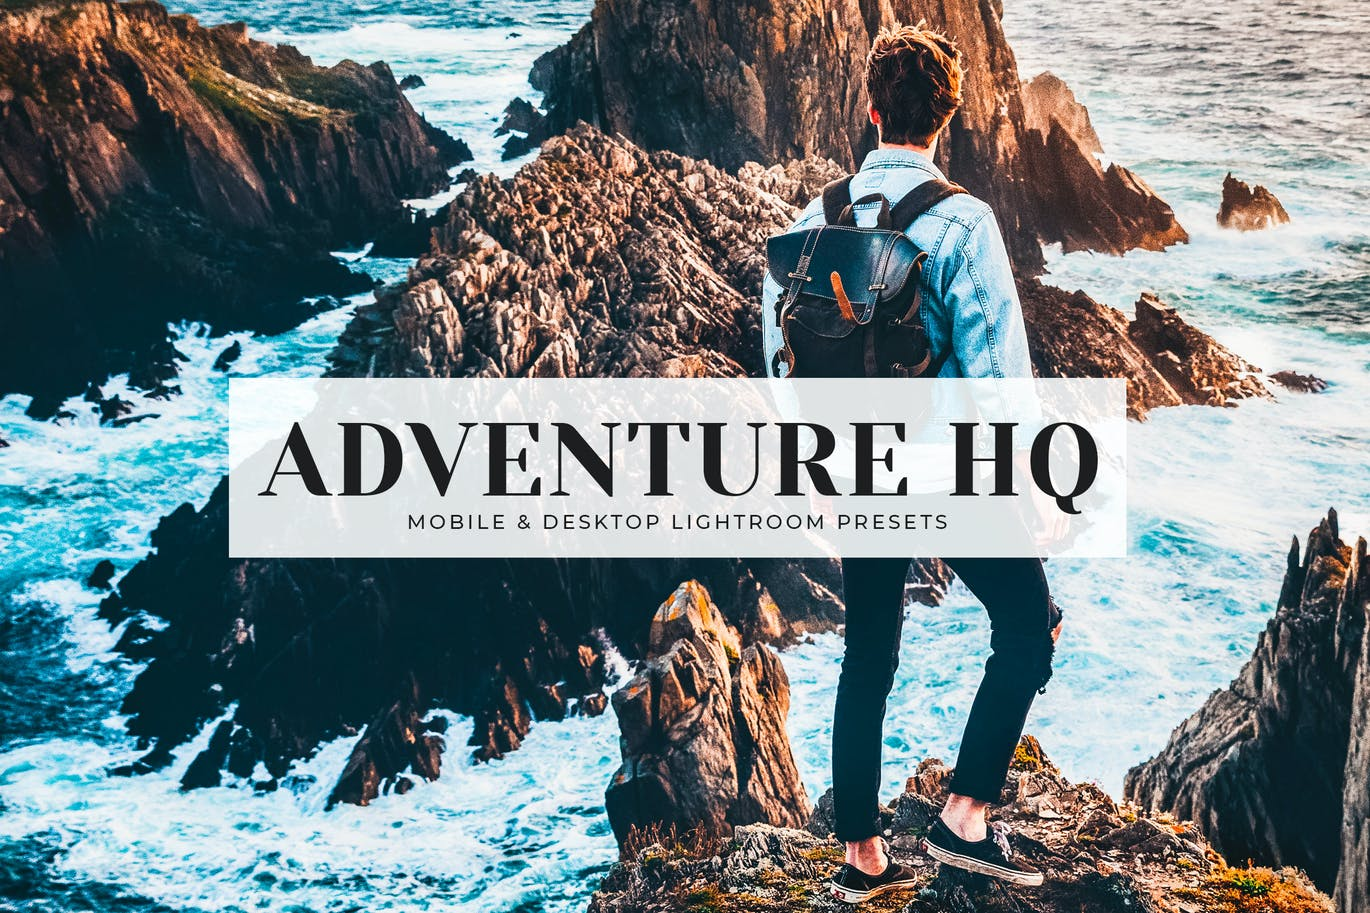 Adventure HQ Mobile Desktop Lightroom